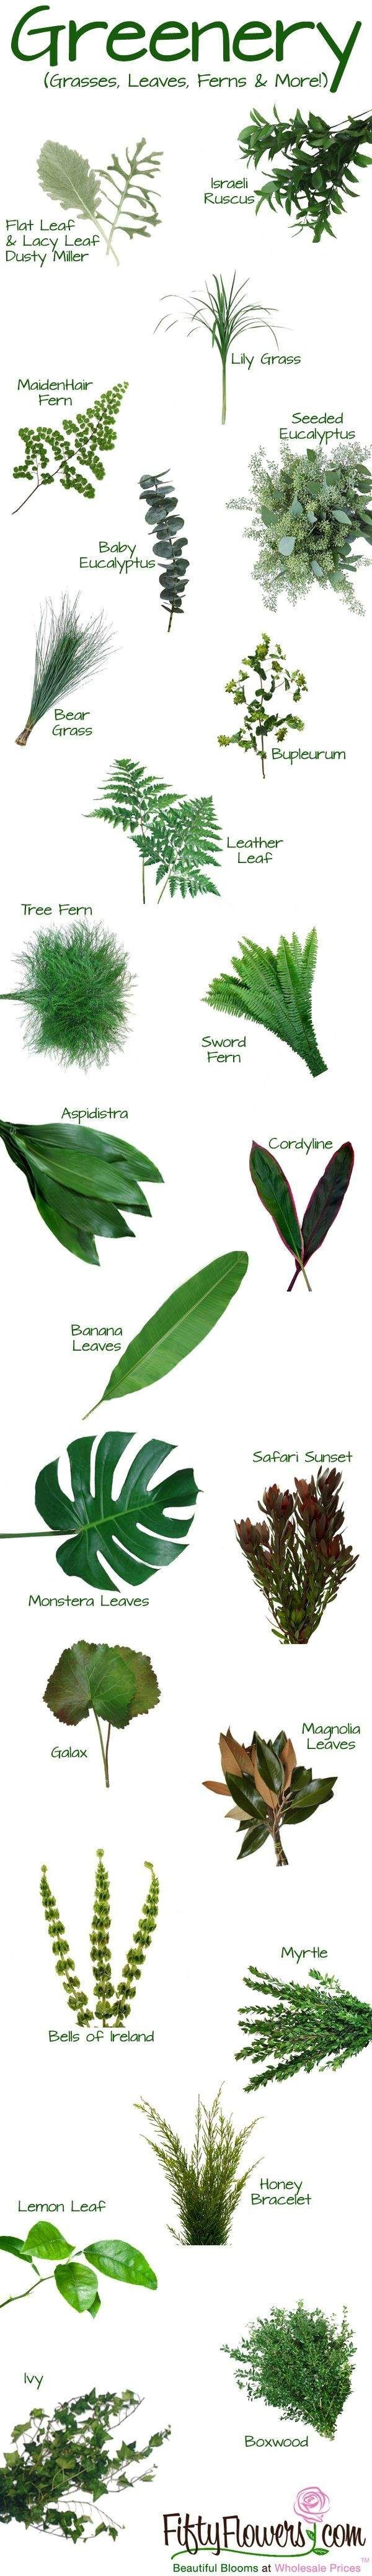 Greenery And Fillers Types Of Ferns Leaves Etc For Bouquet Filler Flower Arrangements Types Of Flowers Flower Names